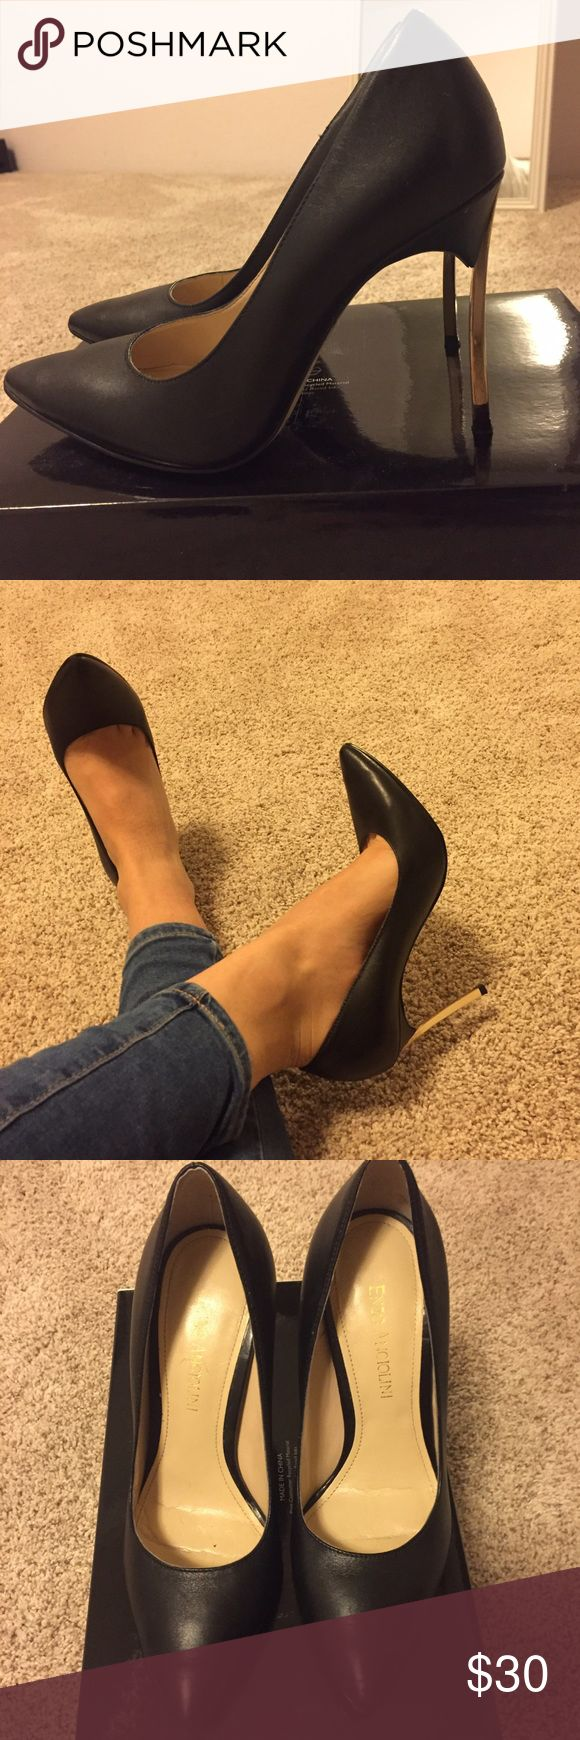 Enzo Angiolini black stiletto pumps w/ gold heels Enzo Angiolini black stiletto pumps with gold heels. Size 5.5. Worn a few times but in near perfect condition except for a nick on the gold heel of one of the pumps (as seen in the photo). Enzo Angiolini Shoes Heels